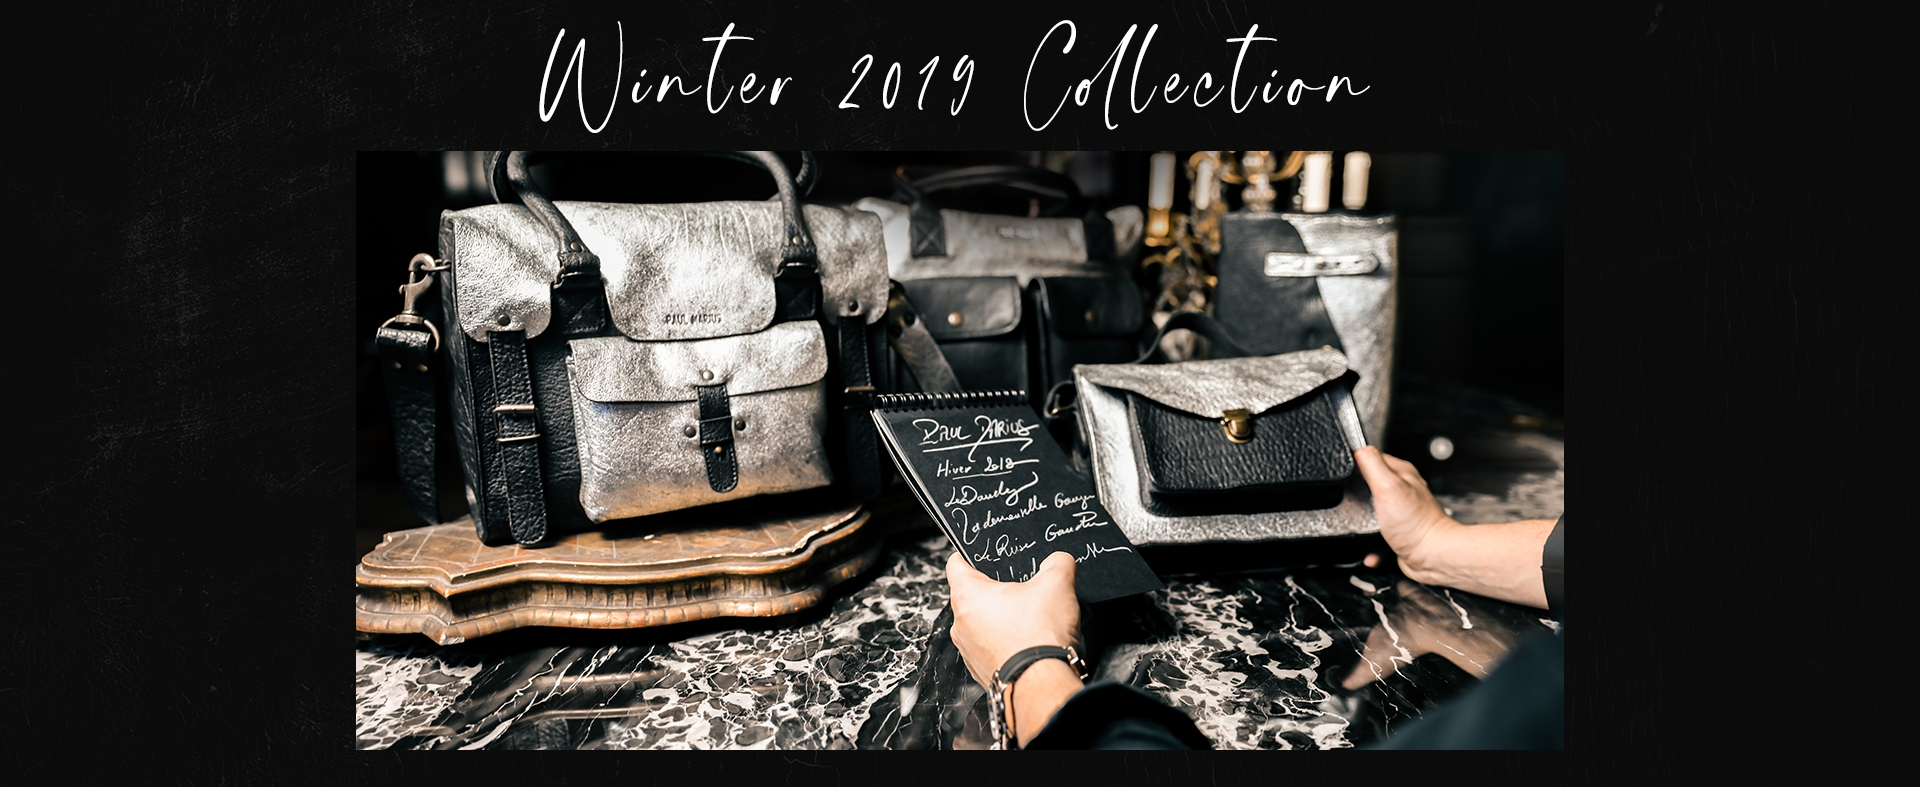 collection hiver 2019